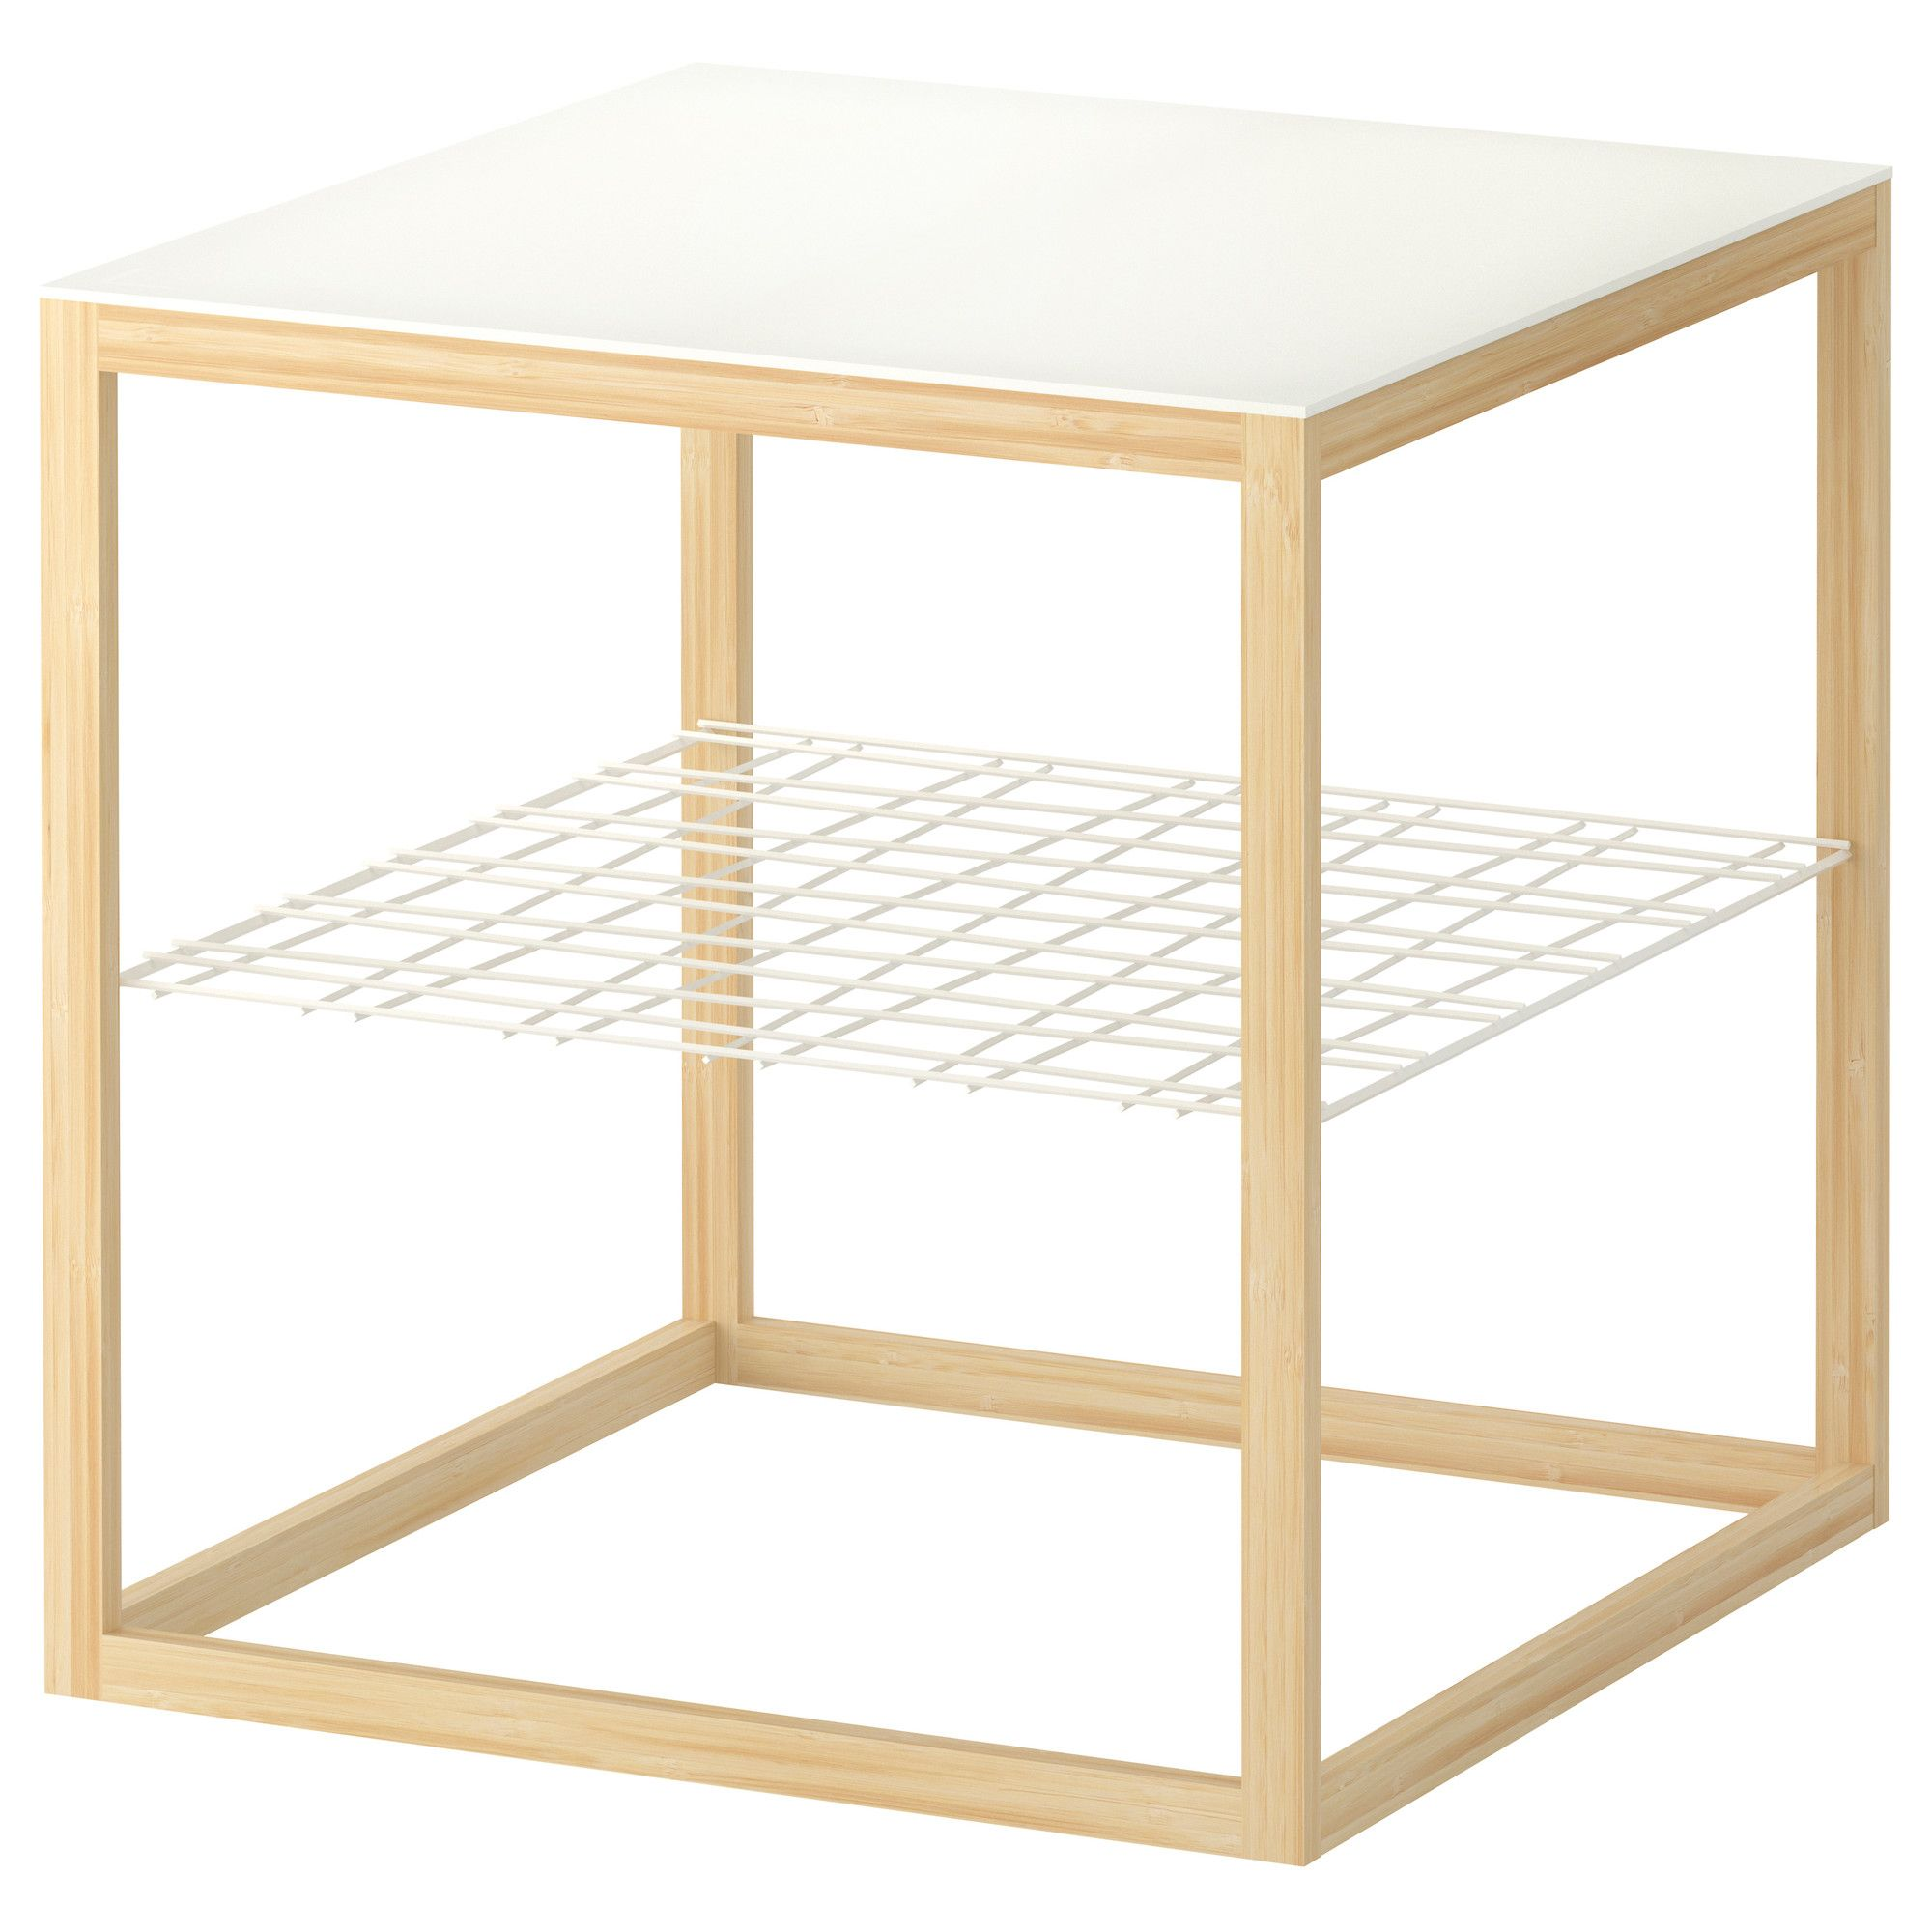 ikea ps 2012 side table white bamboo article number home decor ikea